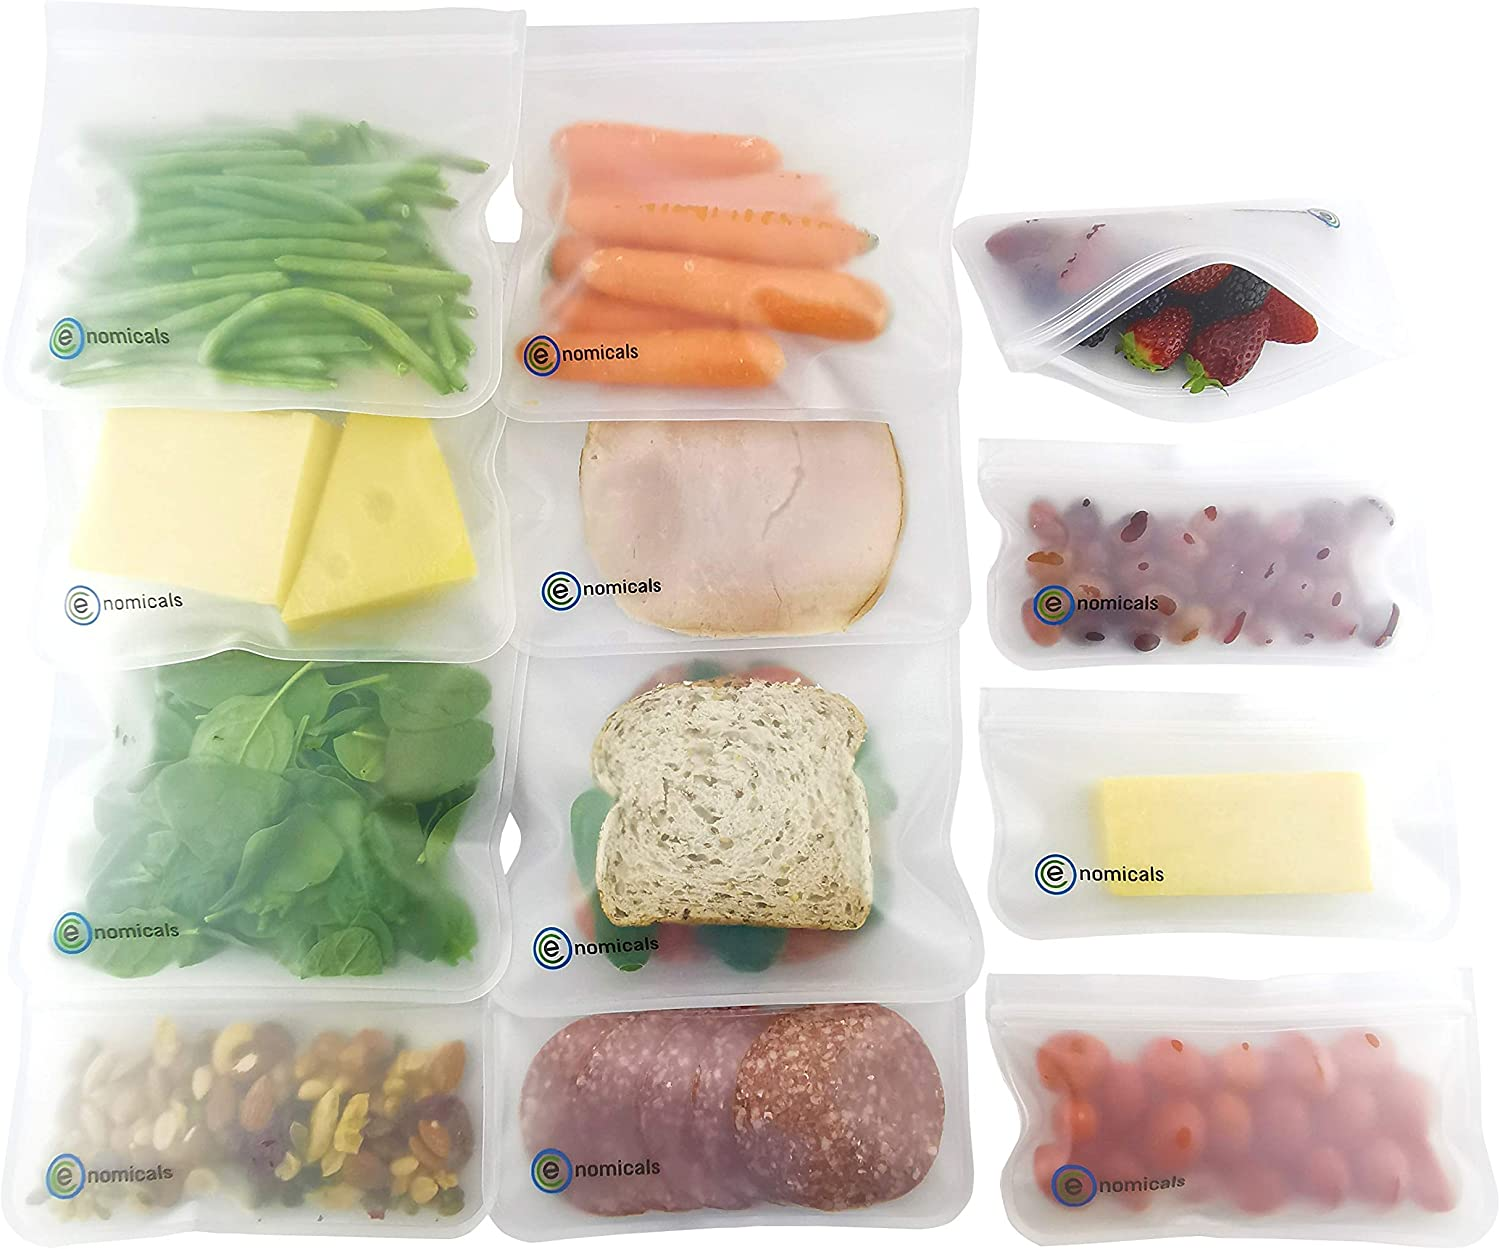 12 Pack BPA FREE Reusable Storage Bags (6 Sandwich Bags, 6 Snack Bags), Quality Extra Thick, Leakproof, Silicone and Plastic Free, Double Ziplock, Lunch Bags,Food Storage, Freezer Safe